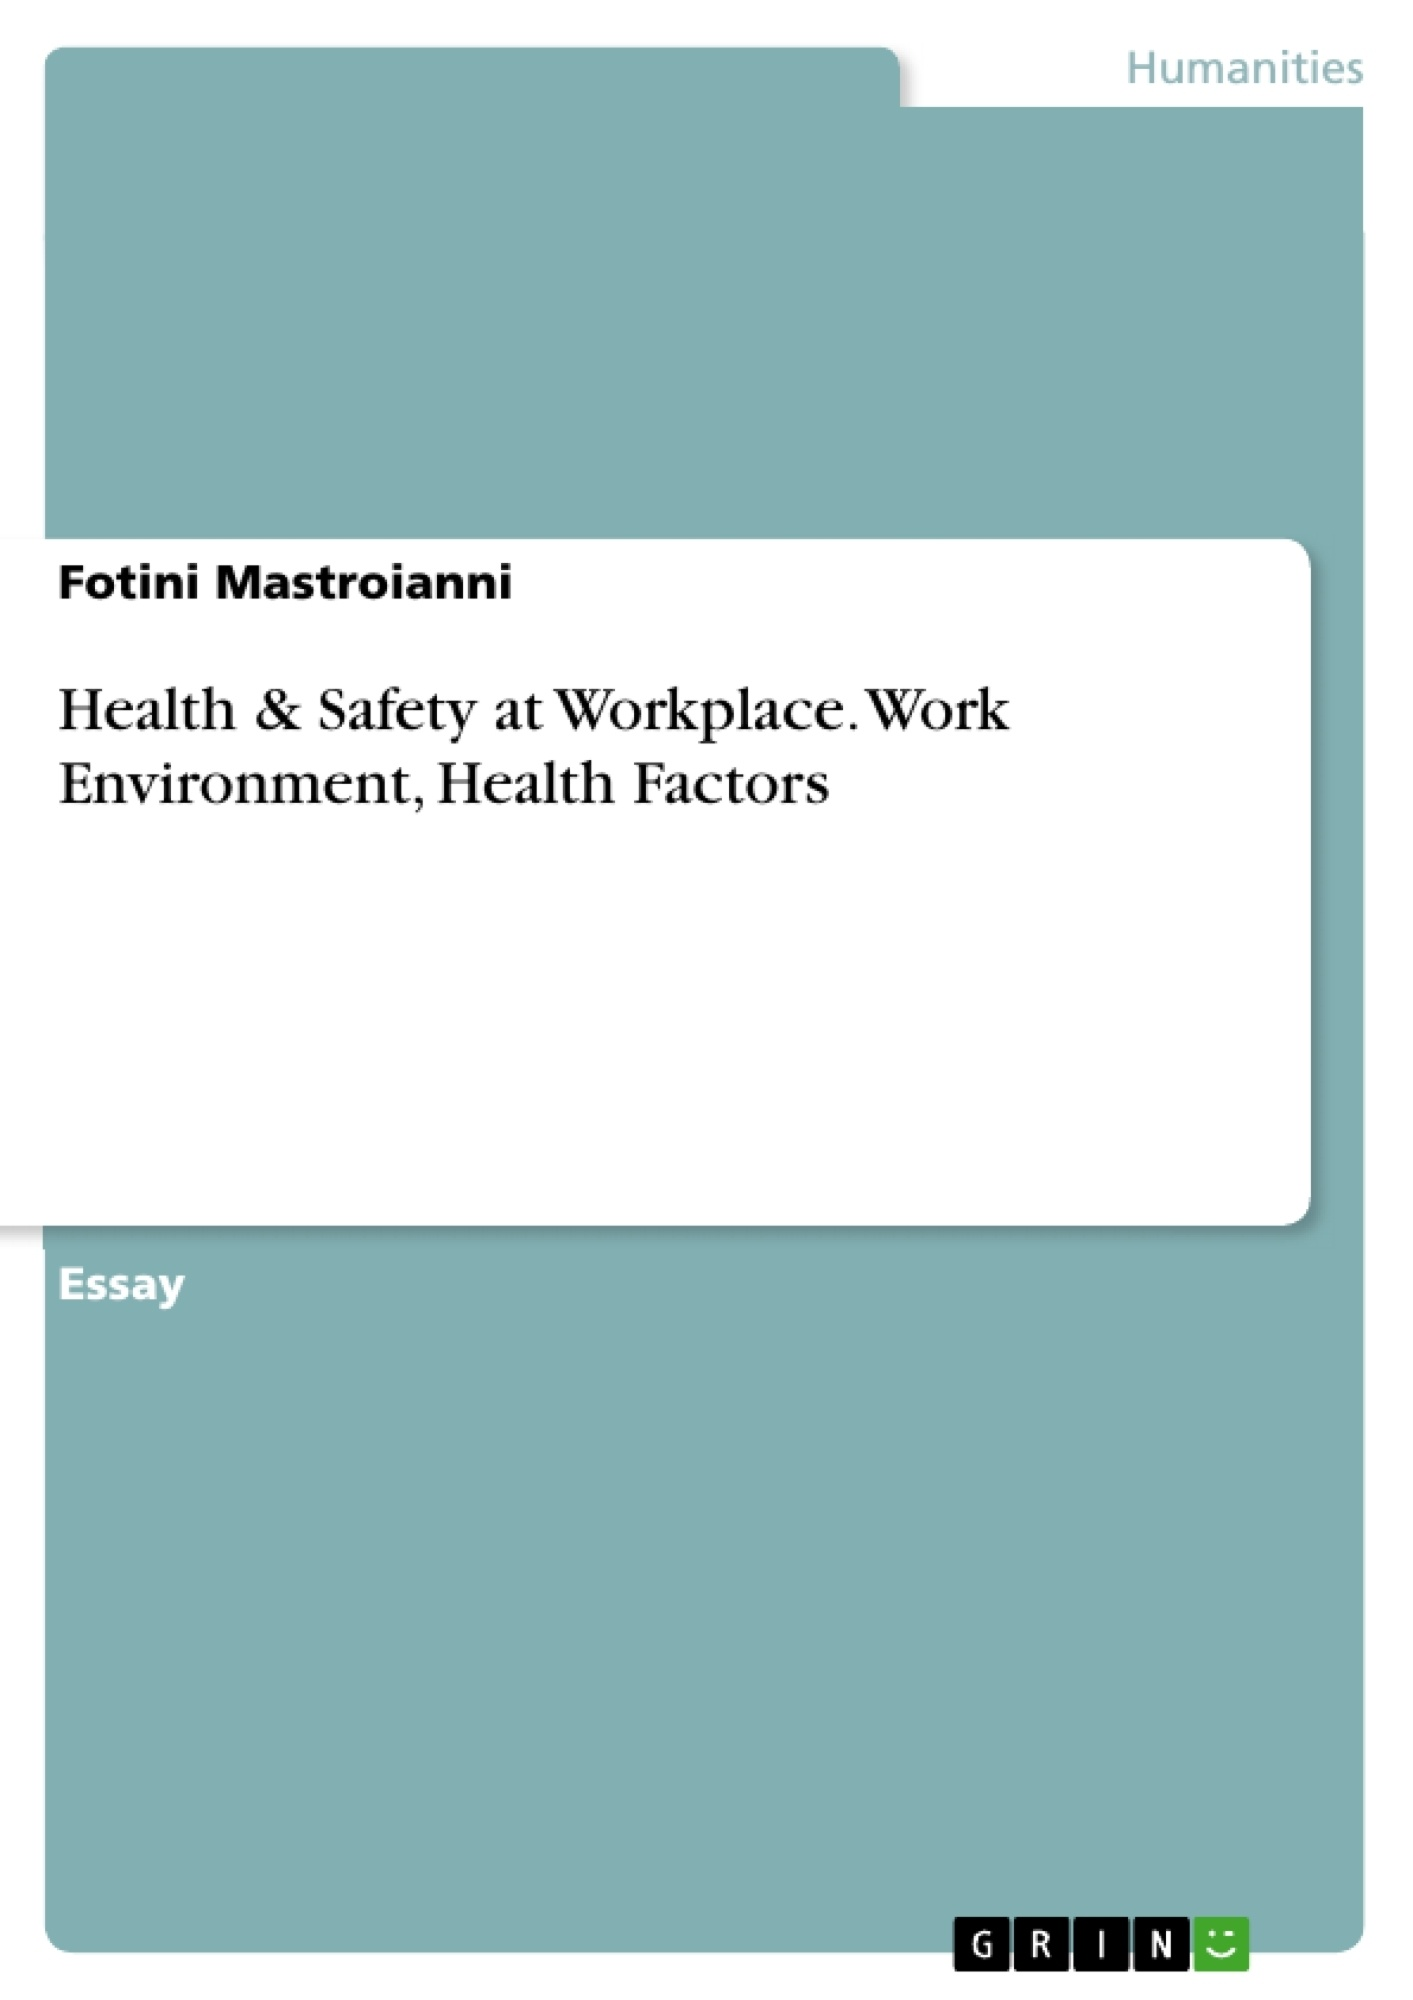 Title: Health & Safety at Workplace. Work Environment, Health Factors